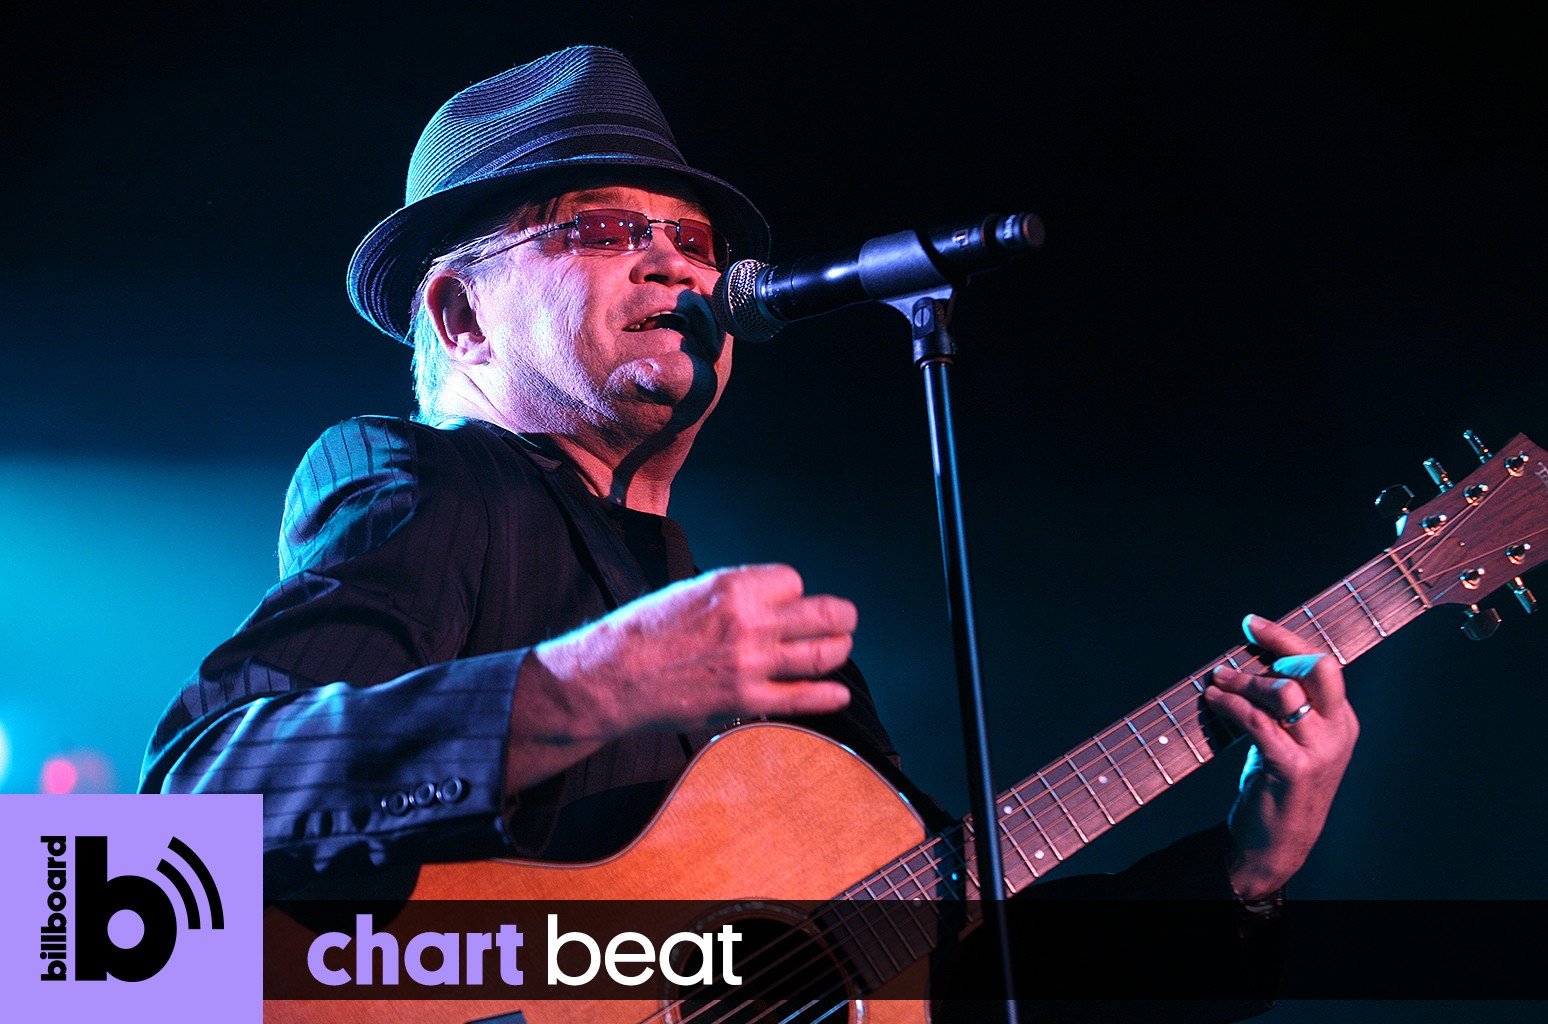 Micky Dolenz of The Monkees performs at Green Valley Ranch in Las Vegas.